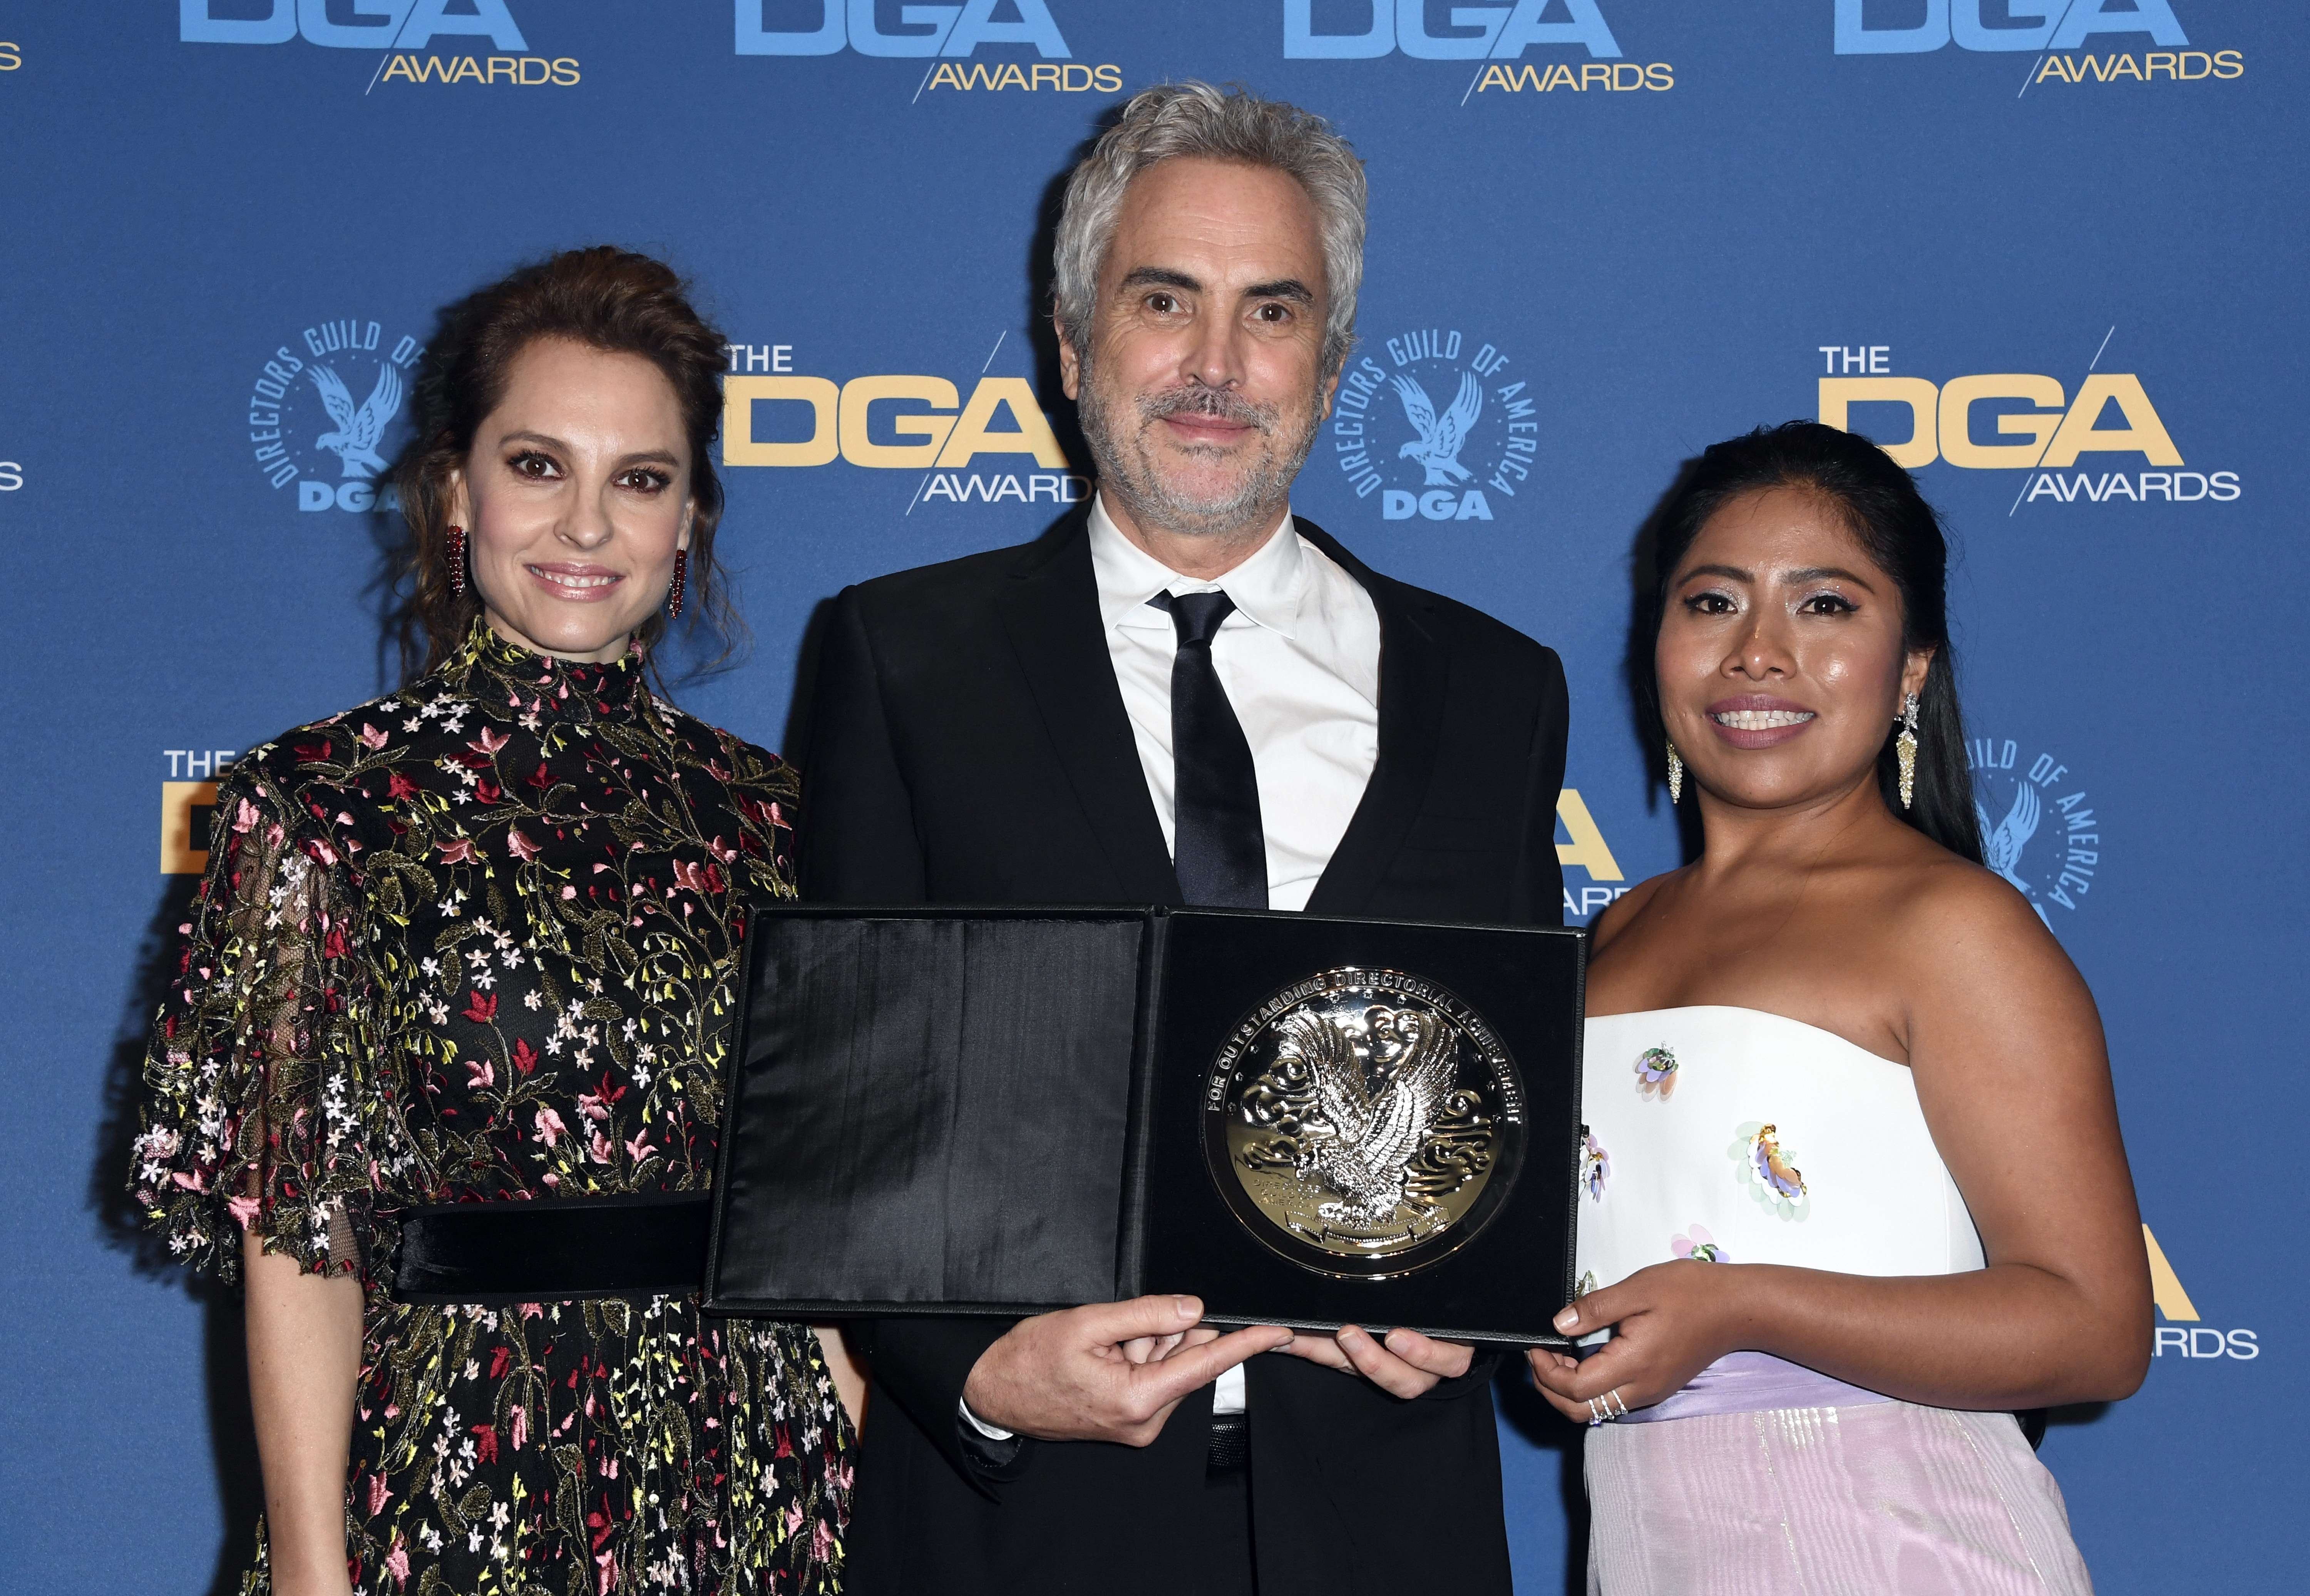 HOLLYWOOD, CALIFORNIA - FEBRUARY 02: Alfonso Cuaron (C) poses in the pressroom with the Feature Film Nomination Award for 'Roma' with Yalitza Aparicio (R) and Marina de Tavira (L) during the 71st Annual Directors Guild Of America Awards at The Ray Dolby Ballroom at Hollywood & Highland Center on February 02, 2019 in Hollywood, California.   Frazer Harrison/Getty Images/AFP == FOR NEWSPAPERS, INTERNET, TELCOS & TELEVISION USE ONLY ==